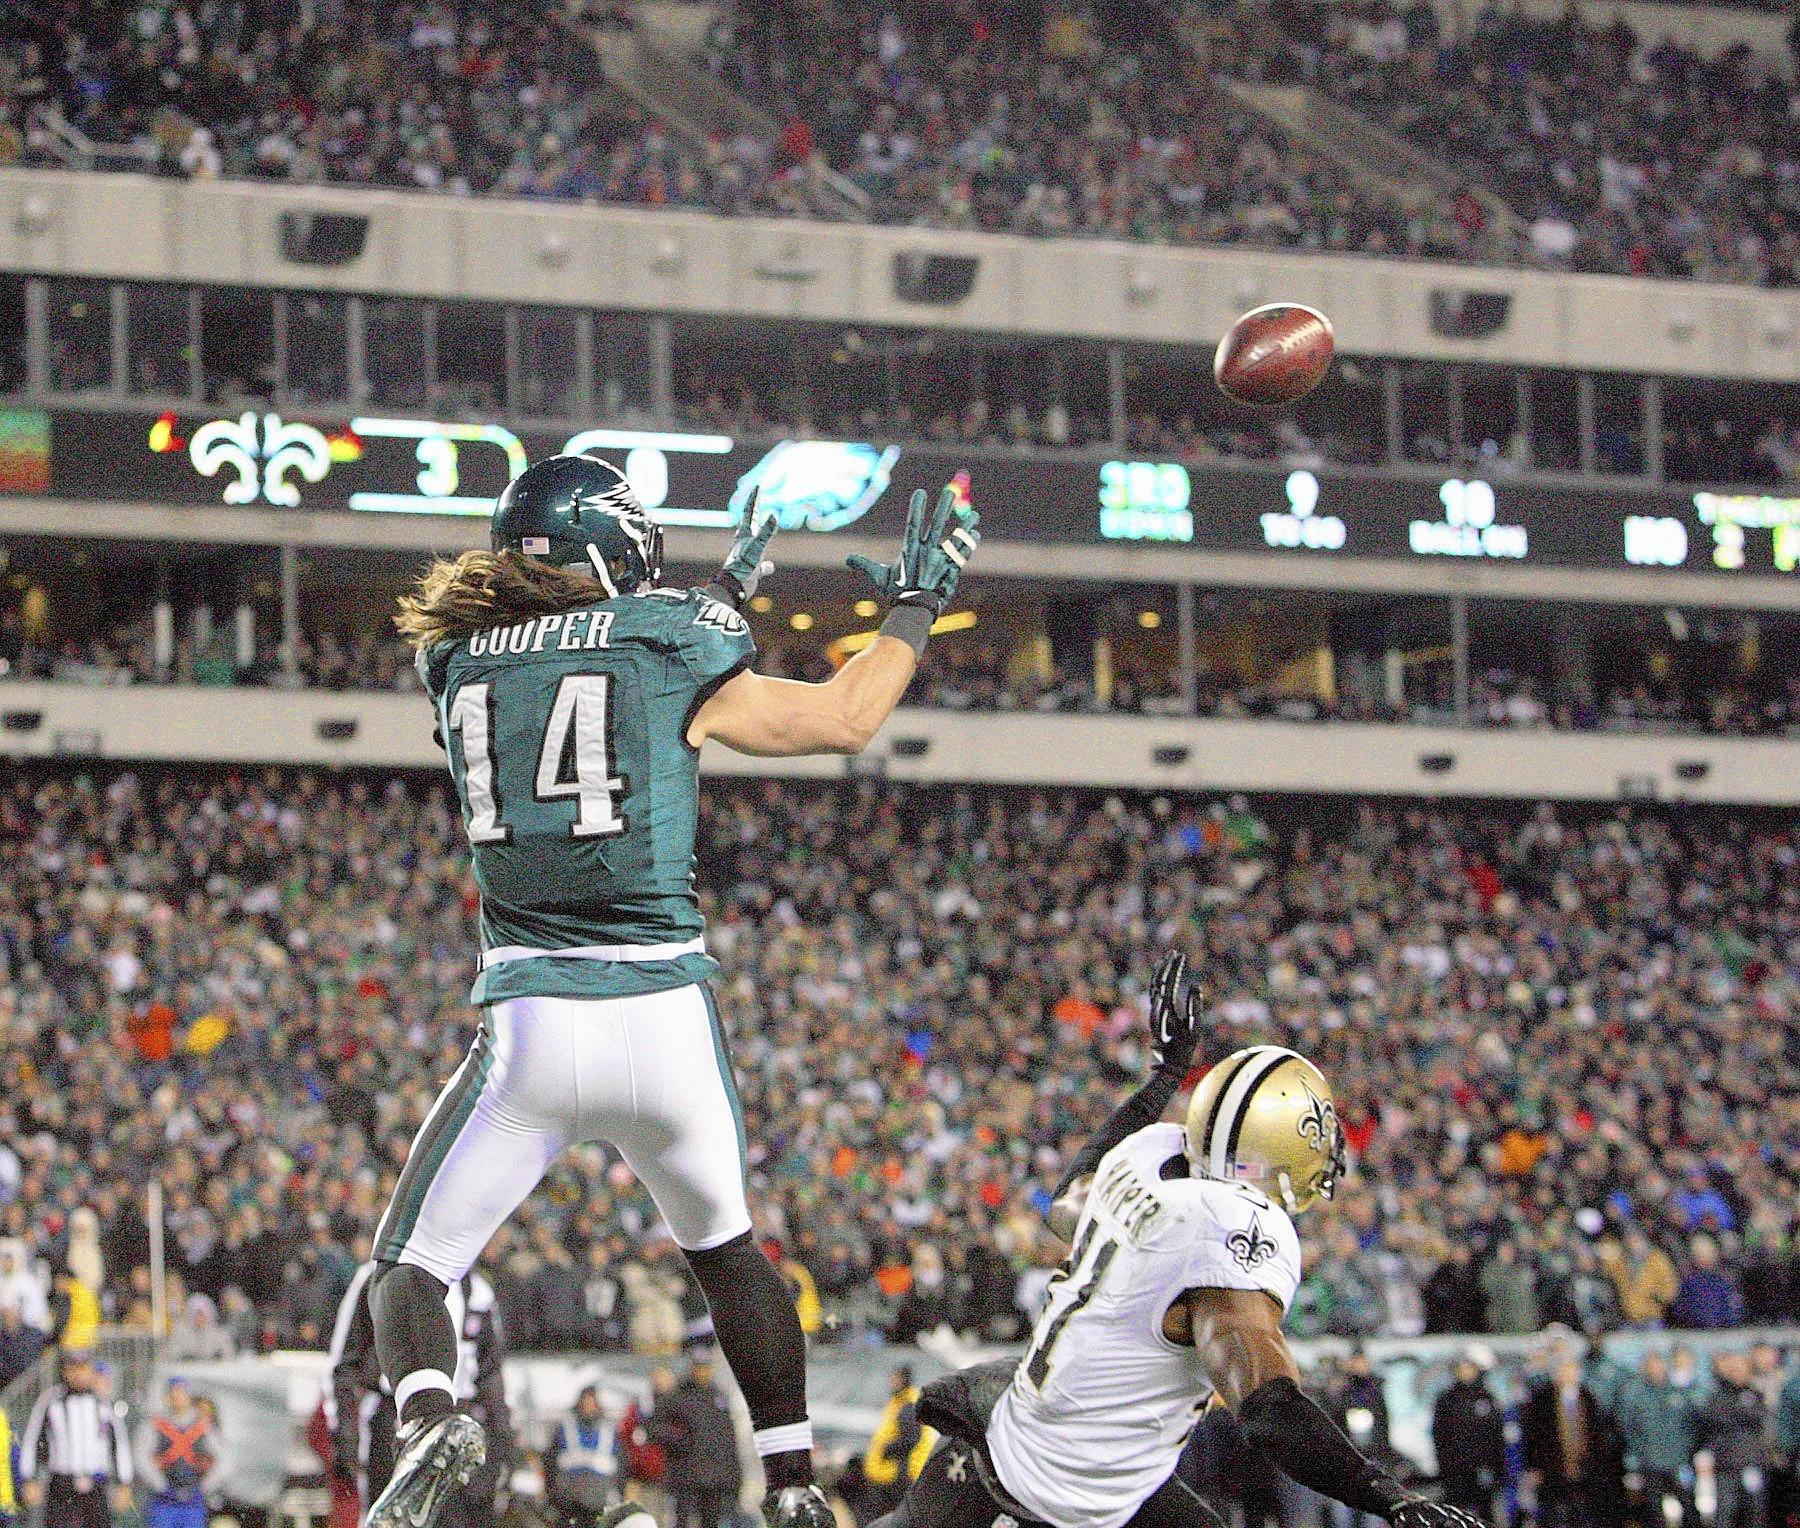 Philadelphia Eagles Riley Cooper (14) catches a touchdown pass against the New Orleans Saints during second half action of an NFC Wild card game Saturday, January 4, 2014 at Lincoln Financial Field in Philadelphia.